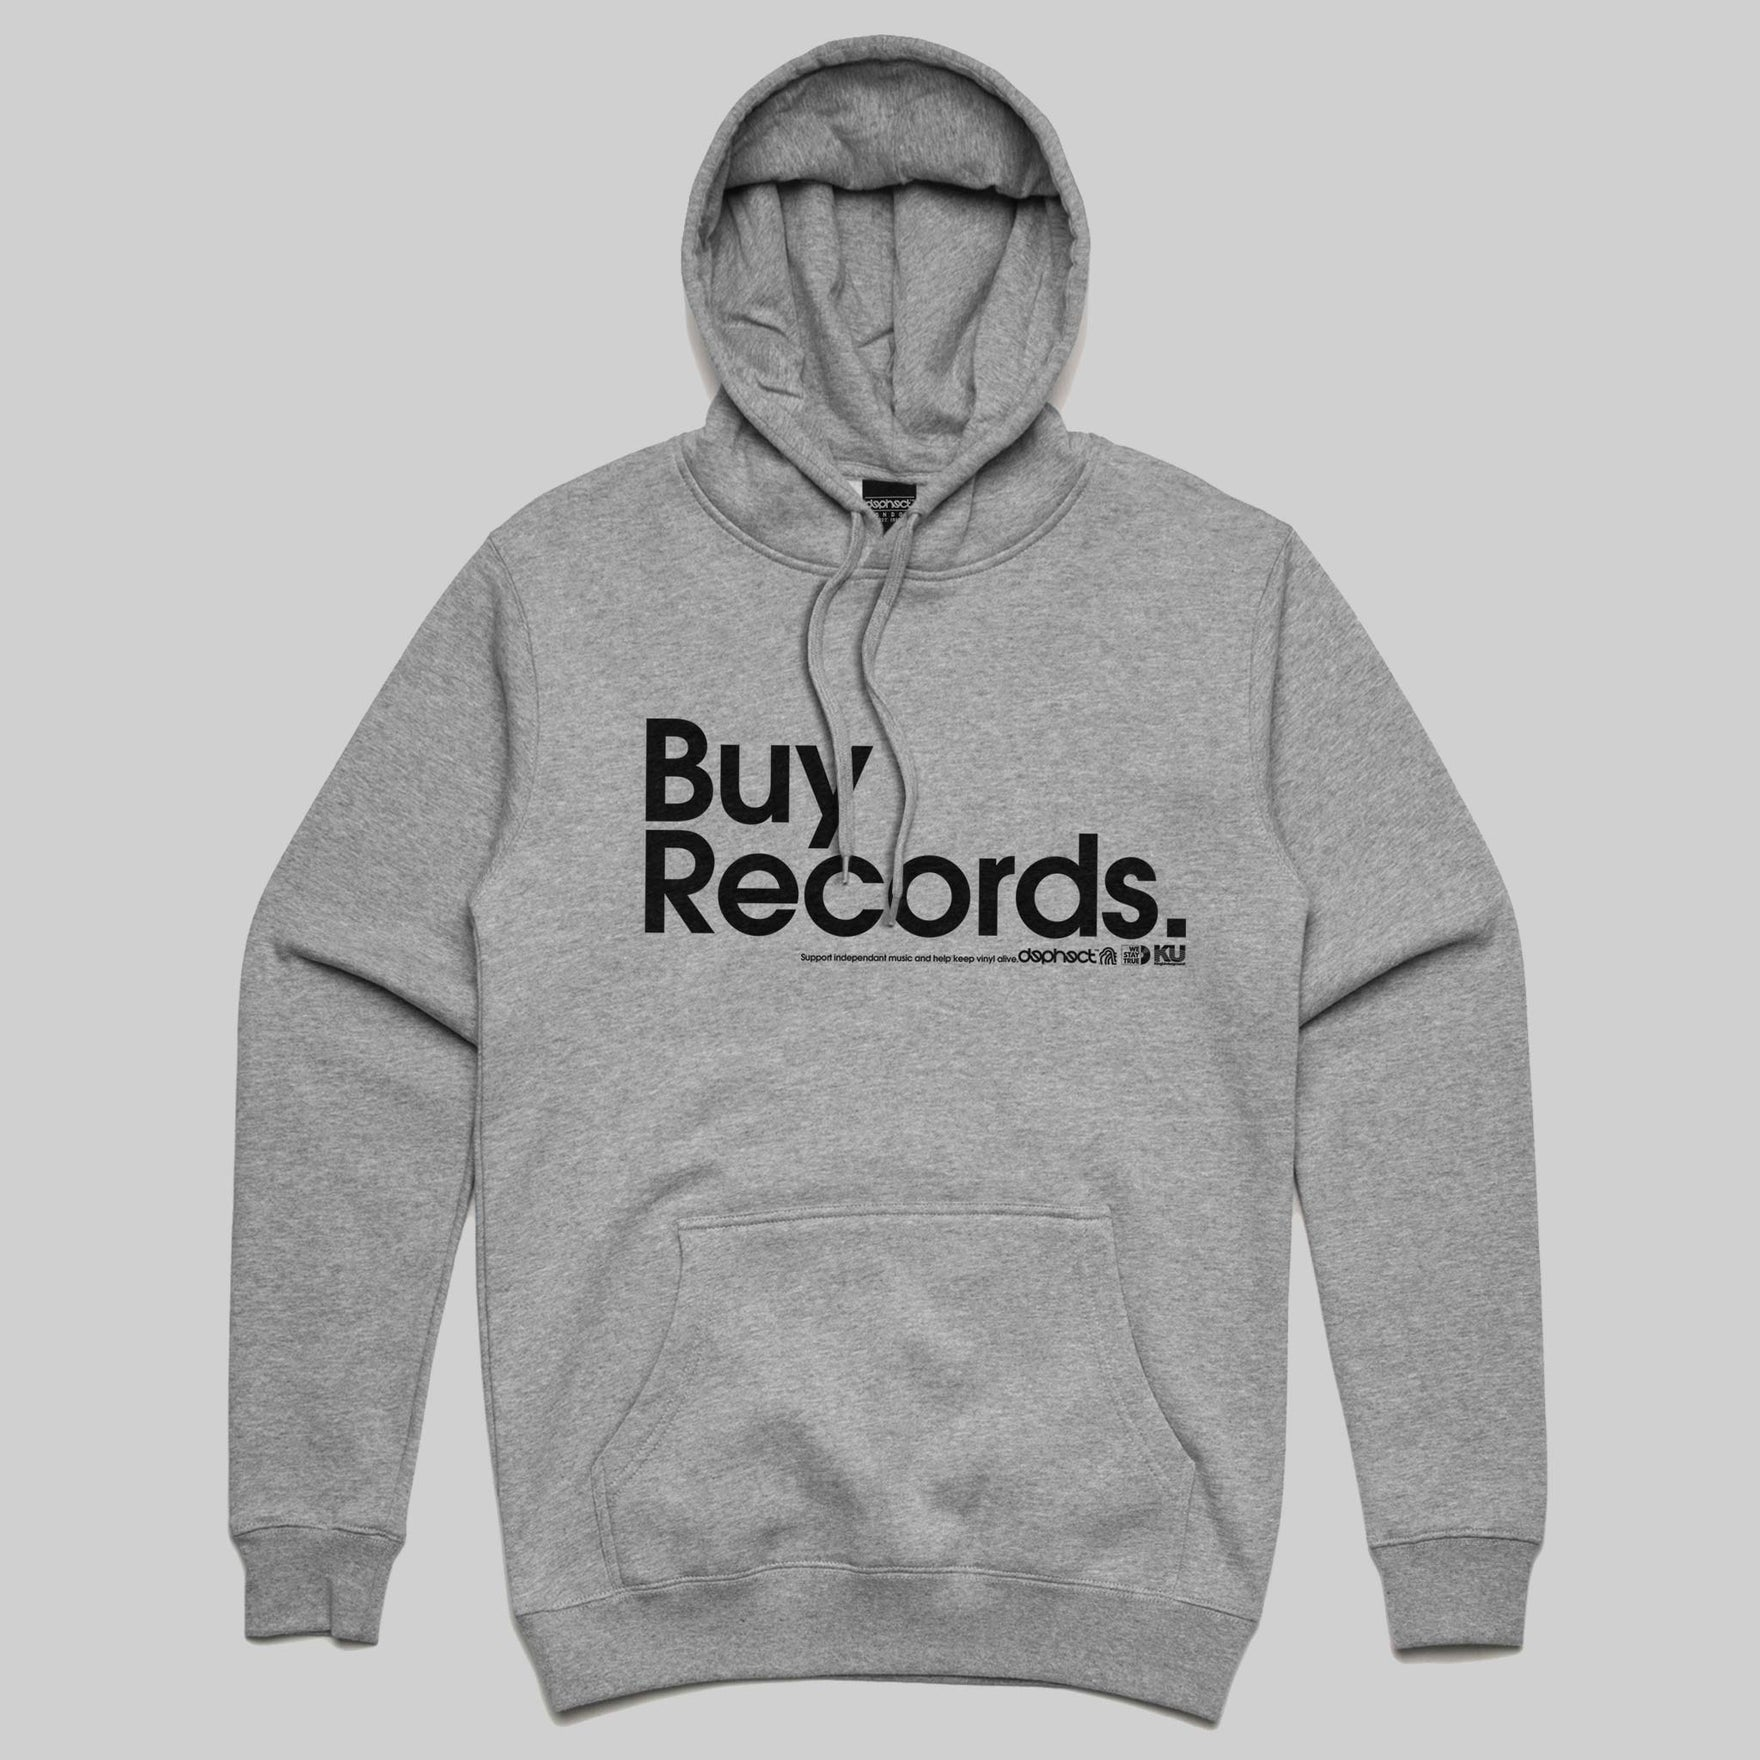 Buy Records Hoody / Light Heather / by Matt Drane